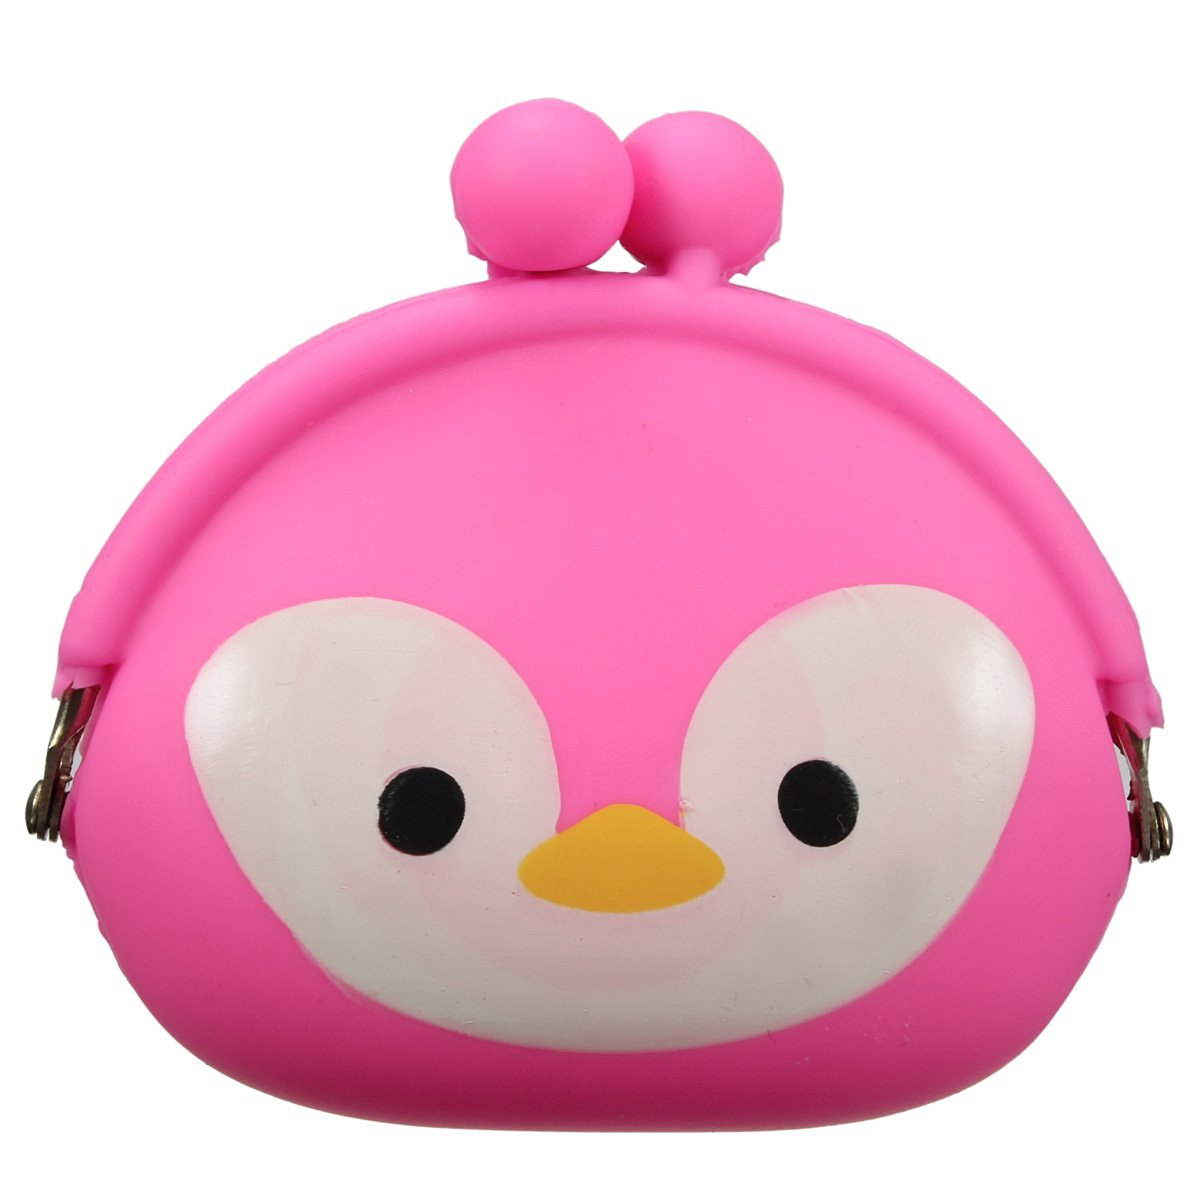 5pcs of Women Girls Wallet Kawaii Cute Cartoon Animal Silicone Jelly Coin Bag Purse Kids Gift Penguin